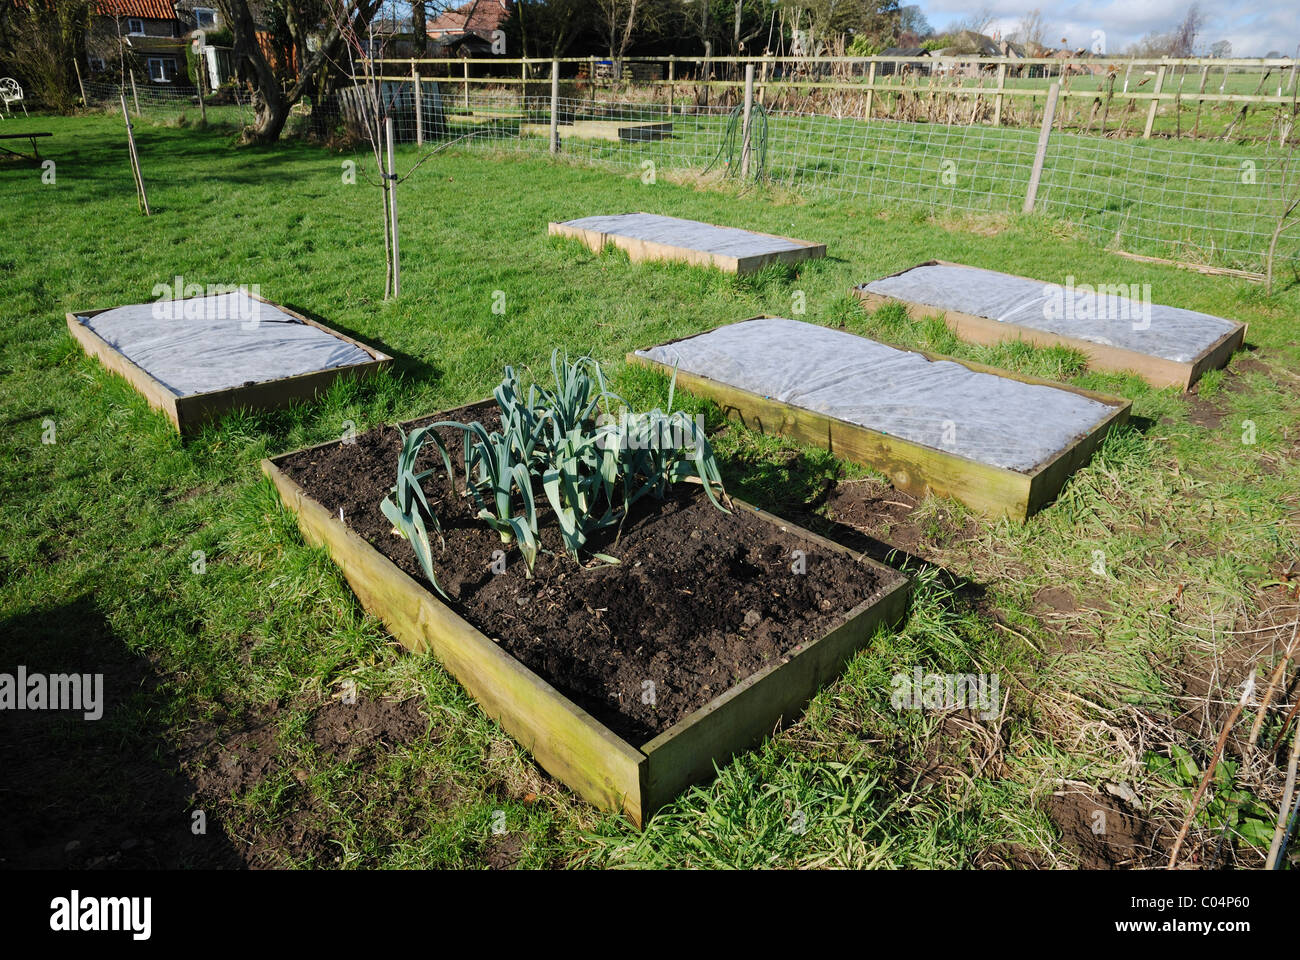 Raised vegetable beds in February, four of which are covered in horticultural fleece. Lincolnshire, England. - Stock Image